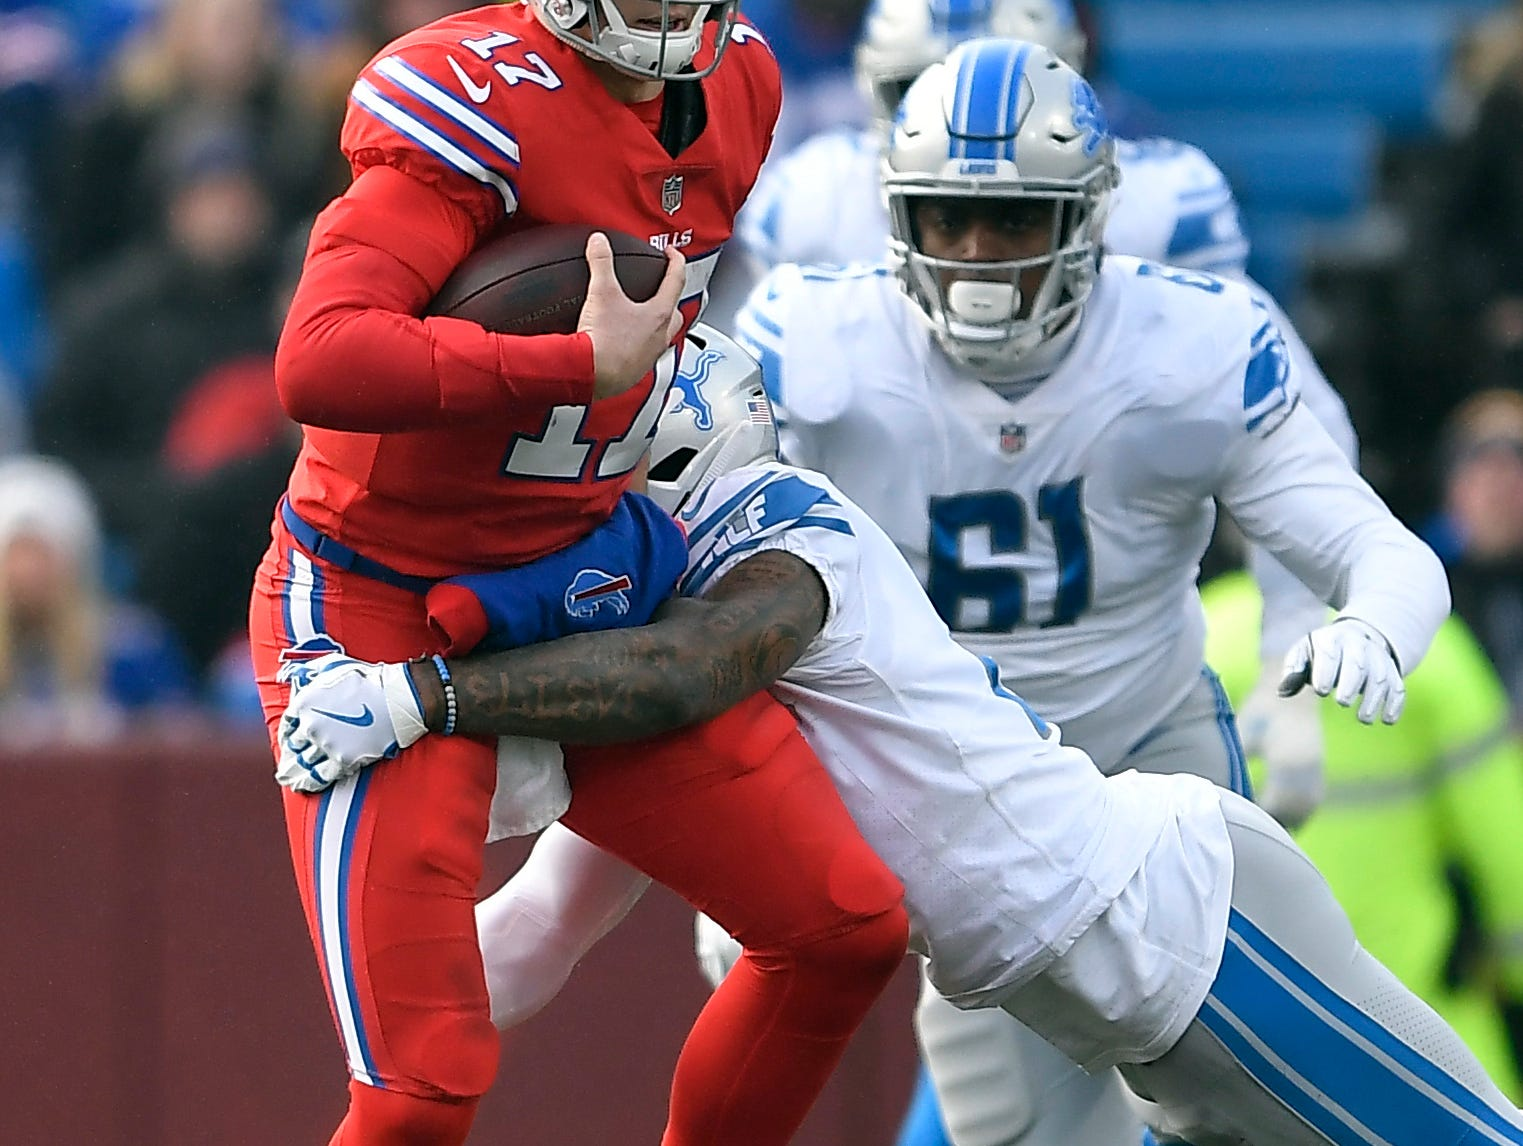 Buffalo Bills quarterback Josh Allen (17) is tackled by Detroit Lions free safety Glover Quin (27) during the first half.